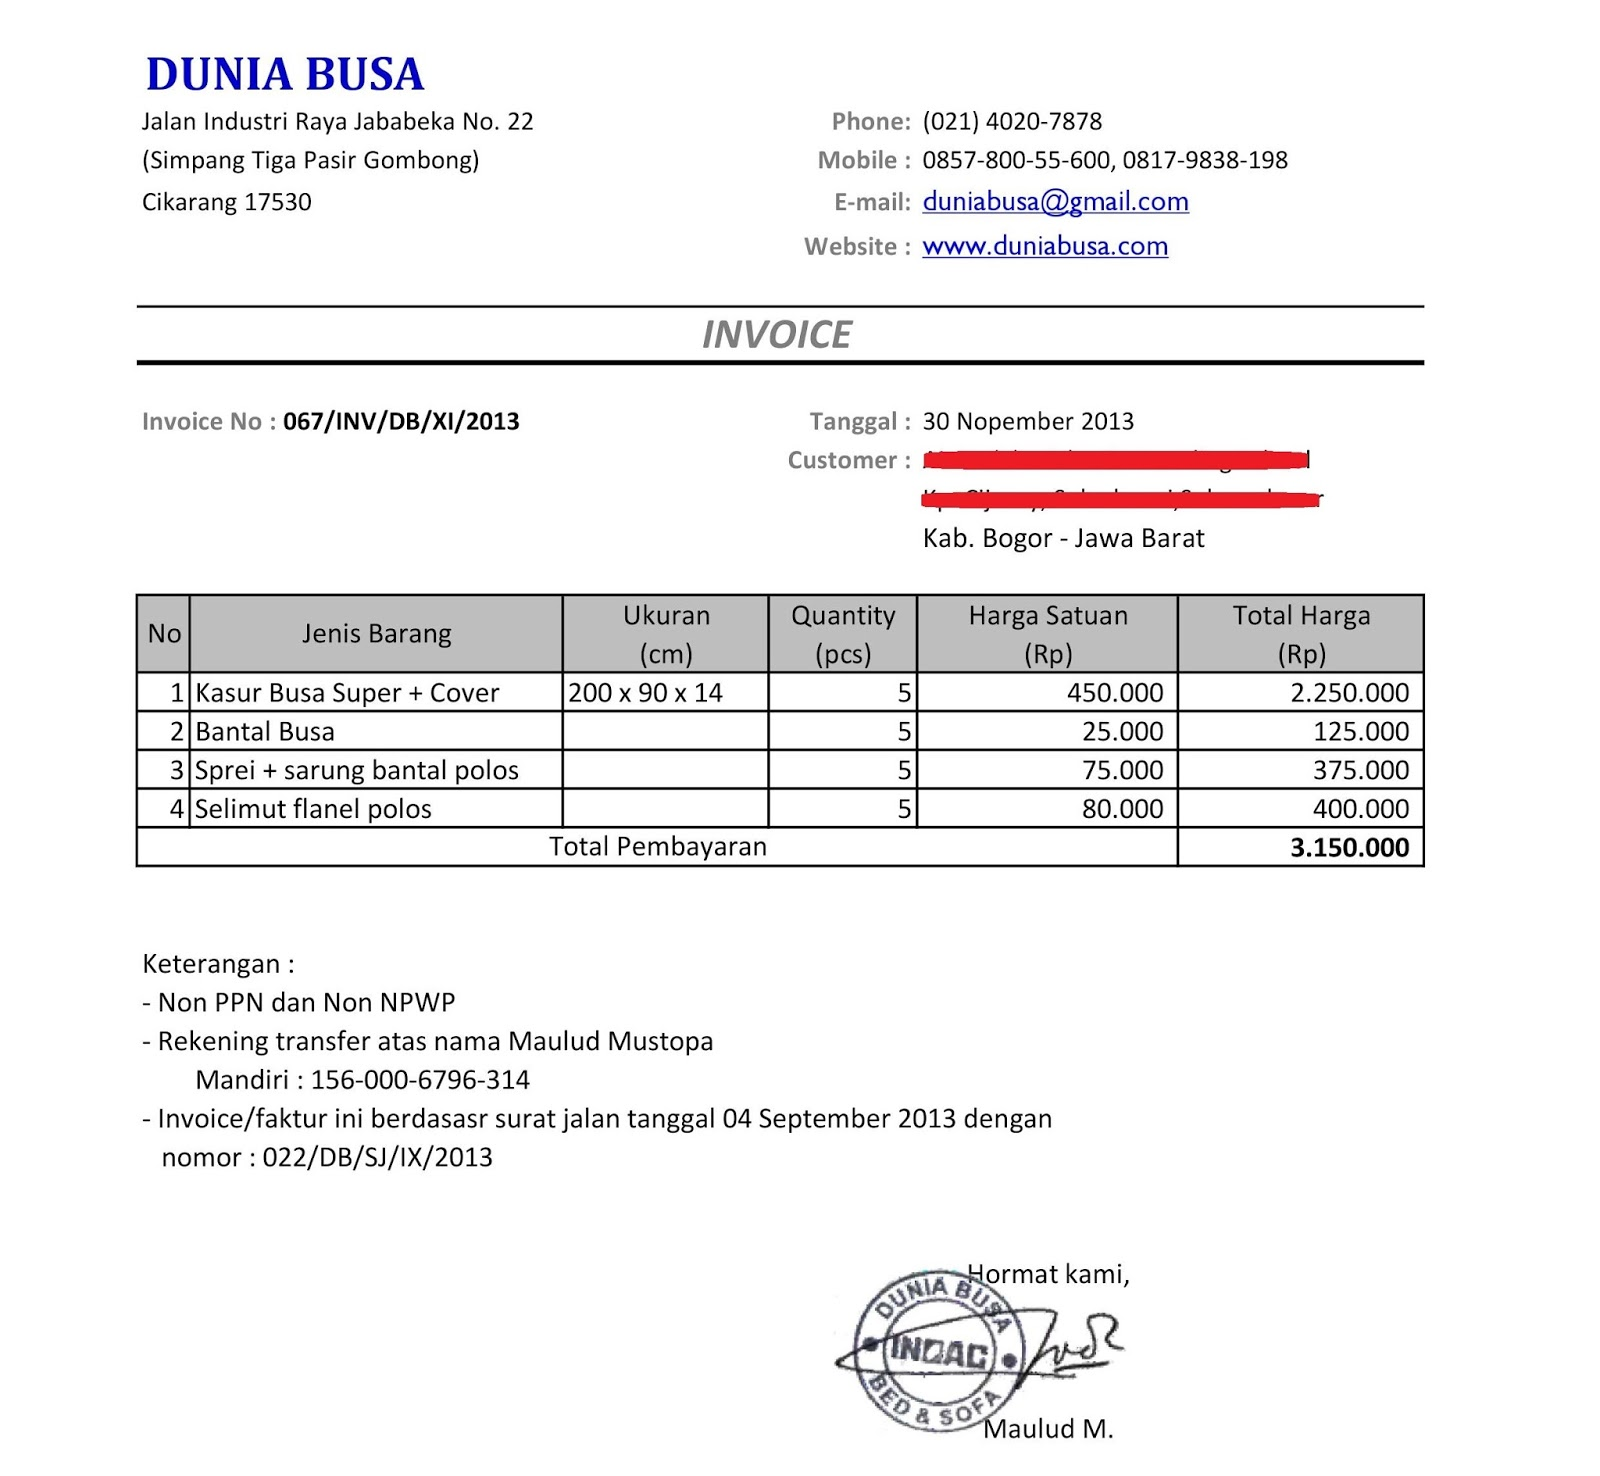 Centralasianshepherdus  Inspiring Free Invoice Online  Create Invoice Online  Invoice Template  With Excellent Contoh Format Invoice Atau Surat Tagihan  Brankas Arsip  Free Invoice Online With Cool Ebay Buyer Invoice Also Invoice Status In Addition Einvoicing Solutions And Form Invoice As Well As What Does Invoice Price Mean For Cars Additionally Product Invoice From Sklepco With Centralasianshepherdus  Excellent Free Invoice Online  Create Invoice Online  Invoice Template  With Cool Contoh Format Invoice Atau Surat Tagihan  Brankas Arsip  Free Invoice Online And Inspiring Ebay Buyer Invoice Also Invoice Status In Addition Einvoicing Solutions From Sklepco